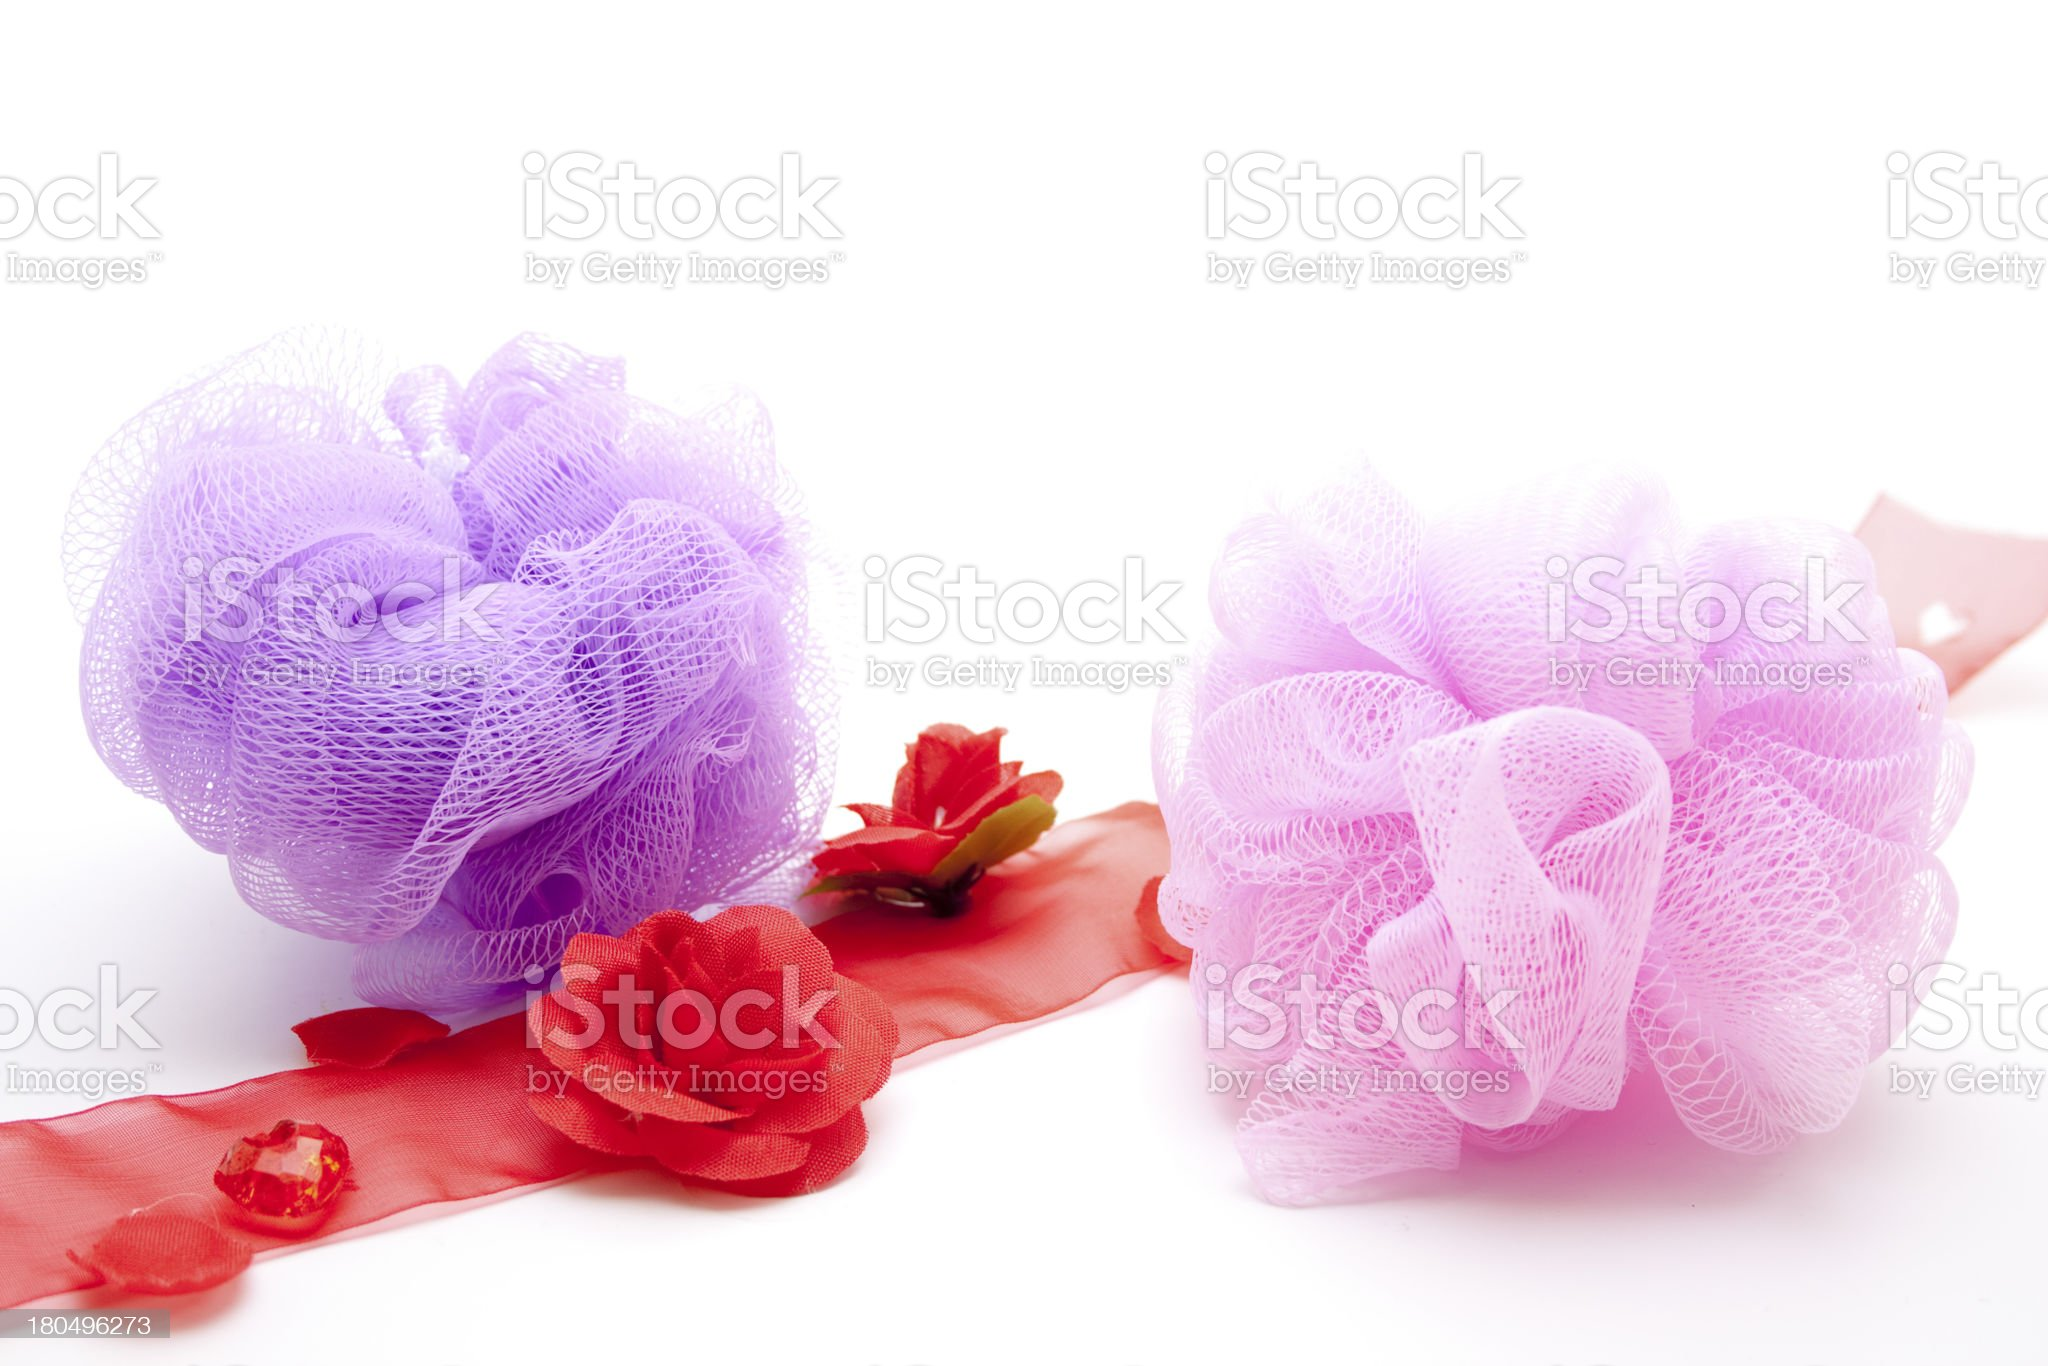 Massage sponge and red rose loop royalty-free stock photo